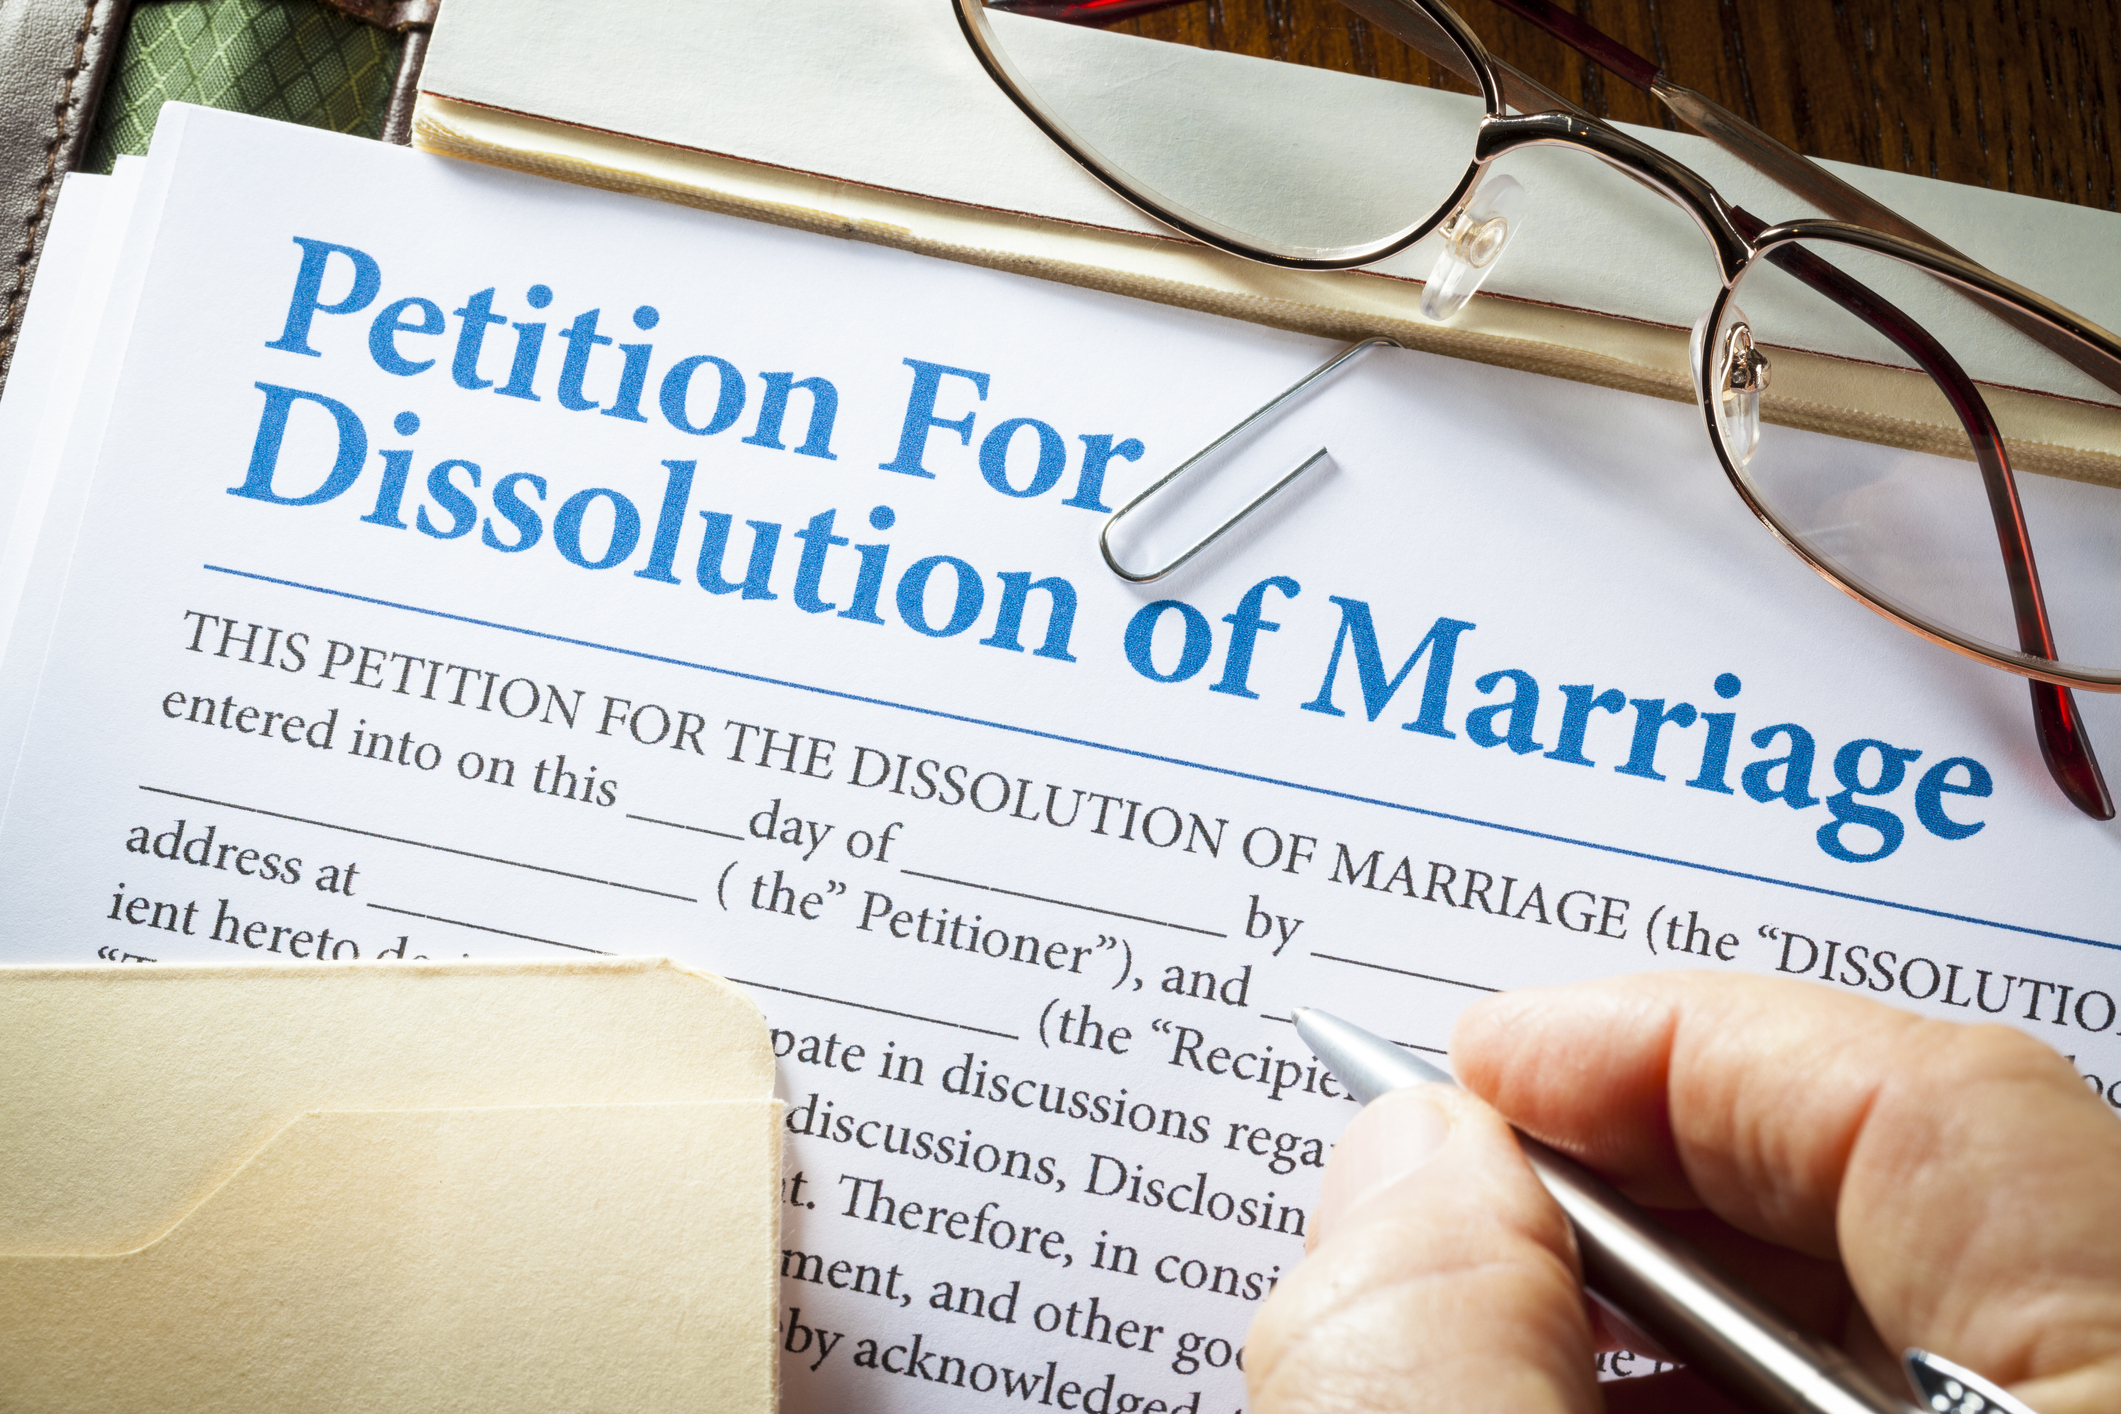 Signing a petition for a dissolution of marriage